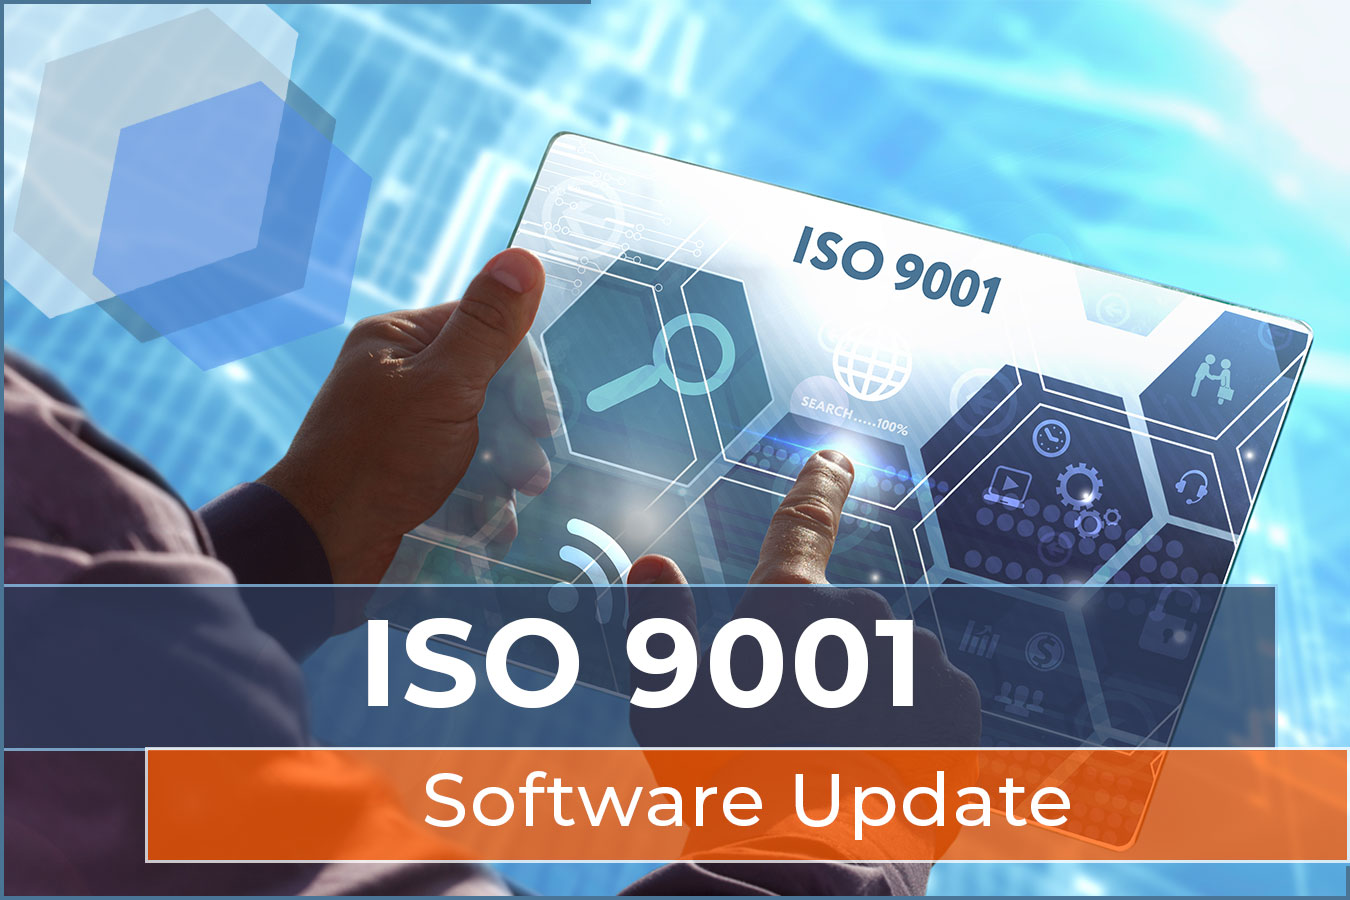 ISO-9001-Software-Update-Slider2